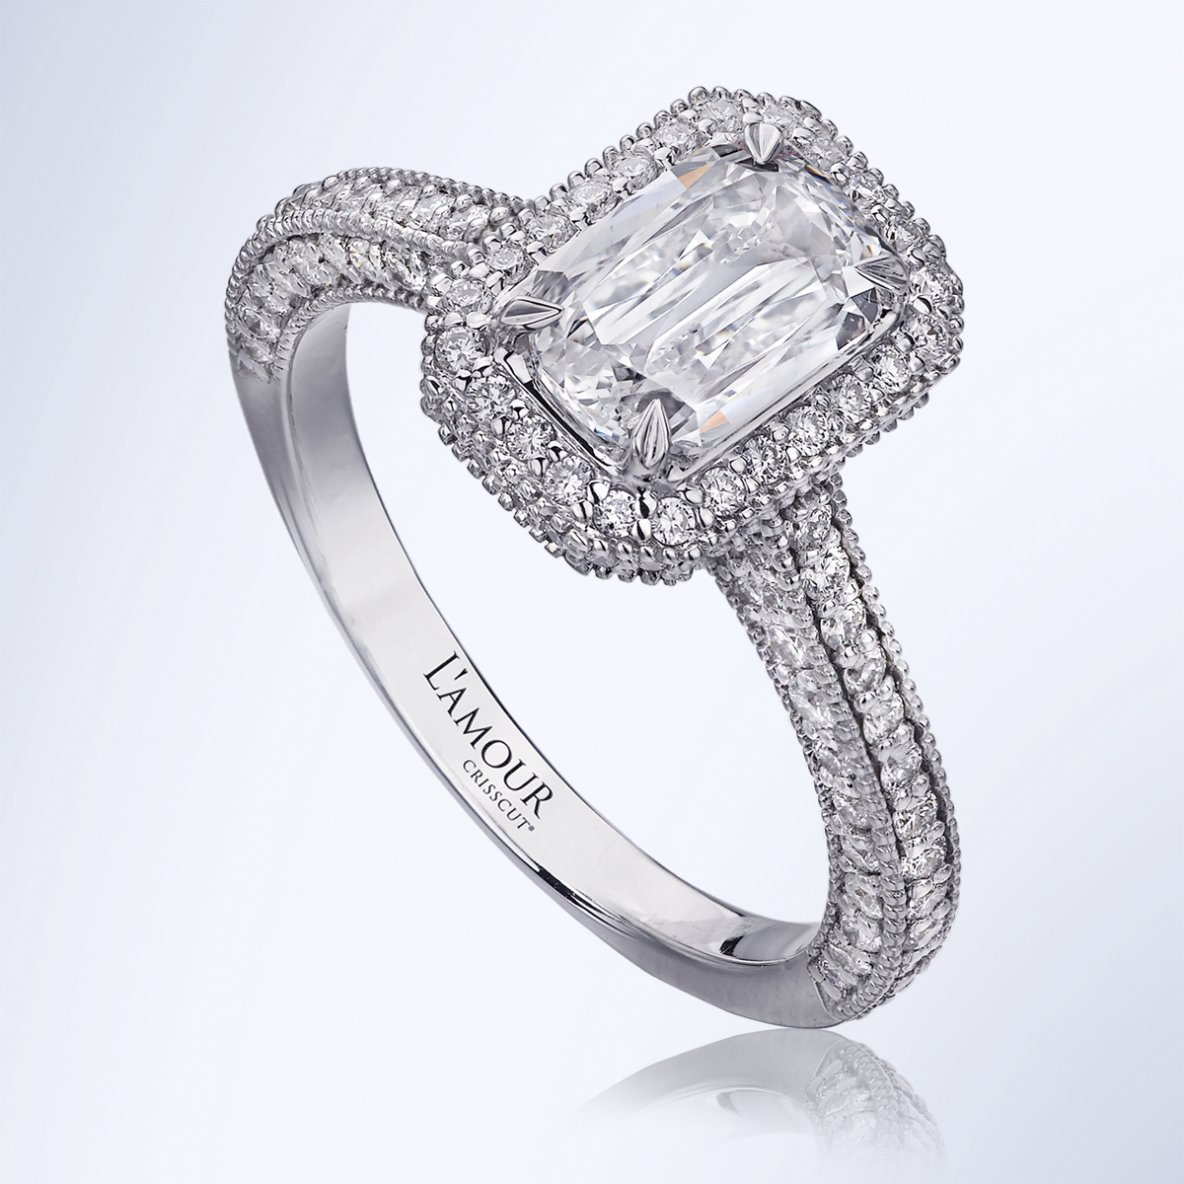 Renee - Lamour Crisscut unique diamond engagement rings